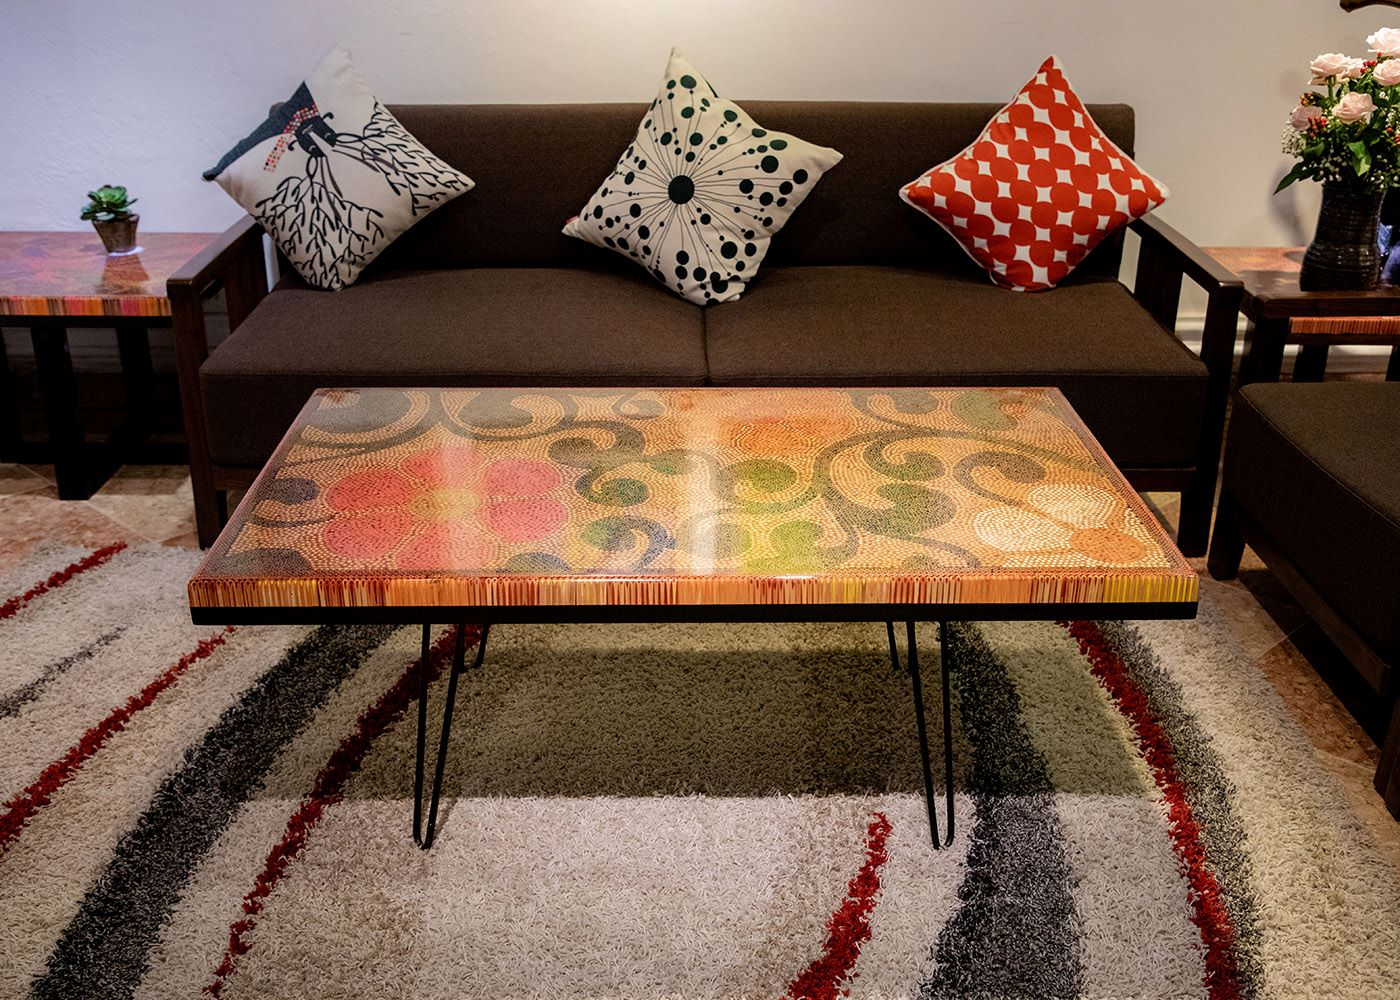 Spring Day Colored-Pencil Coffee Table